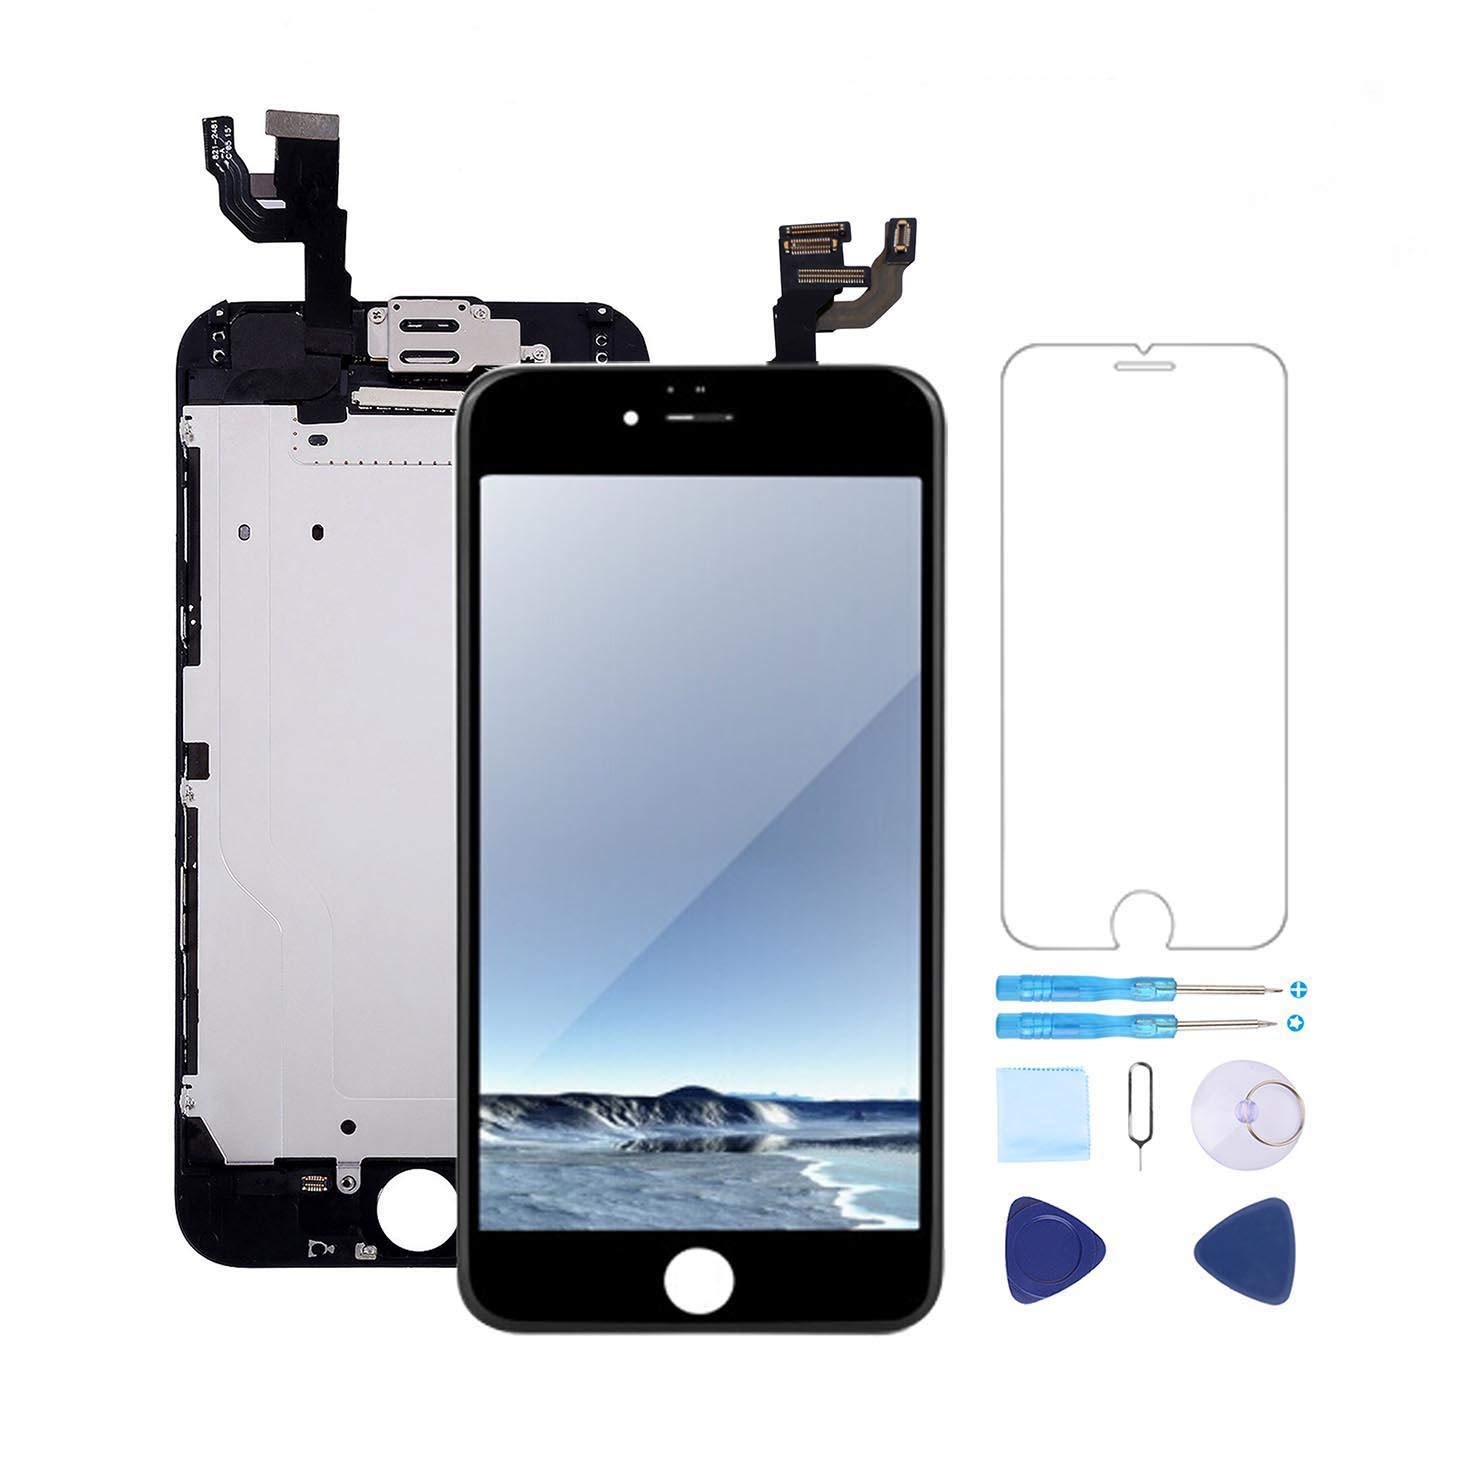 buy popular 506a2 fa81f Screen Replacement for iPhone 6 Plus Screen Replacement Black 5.5